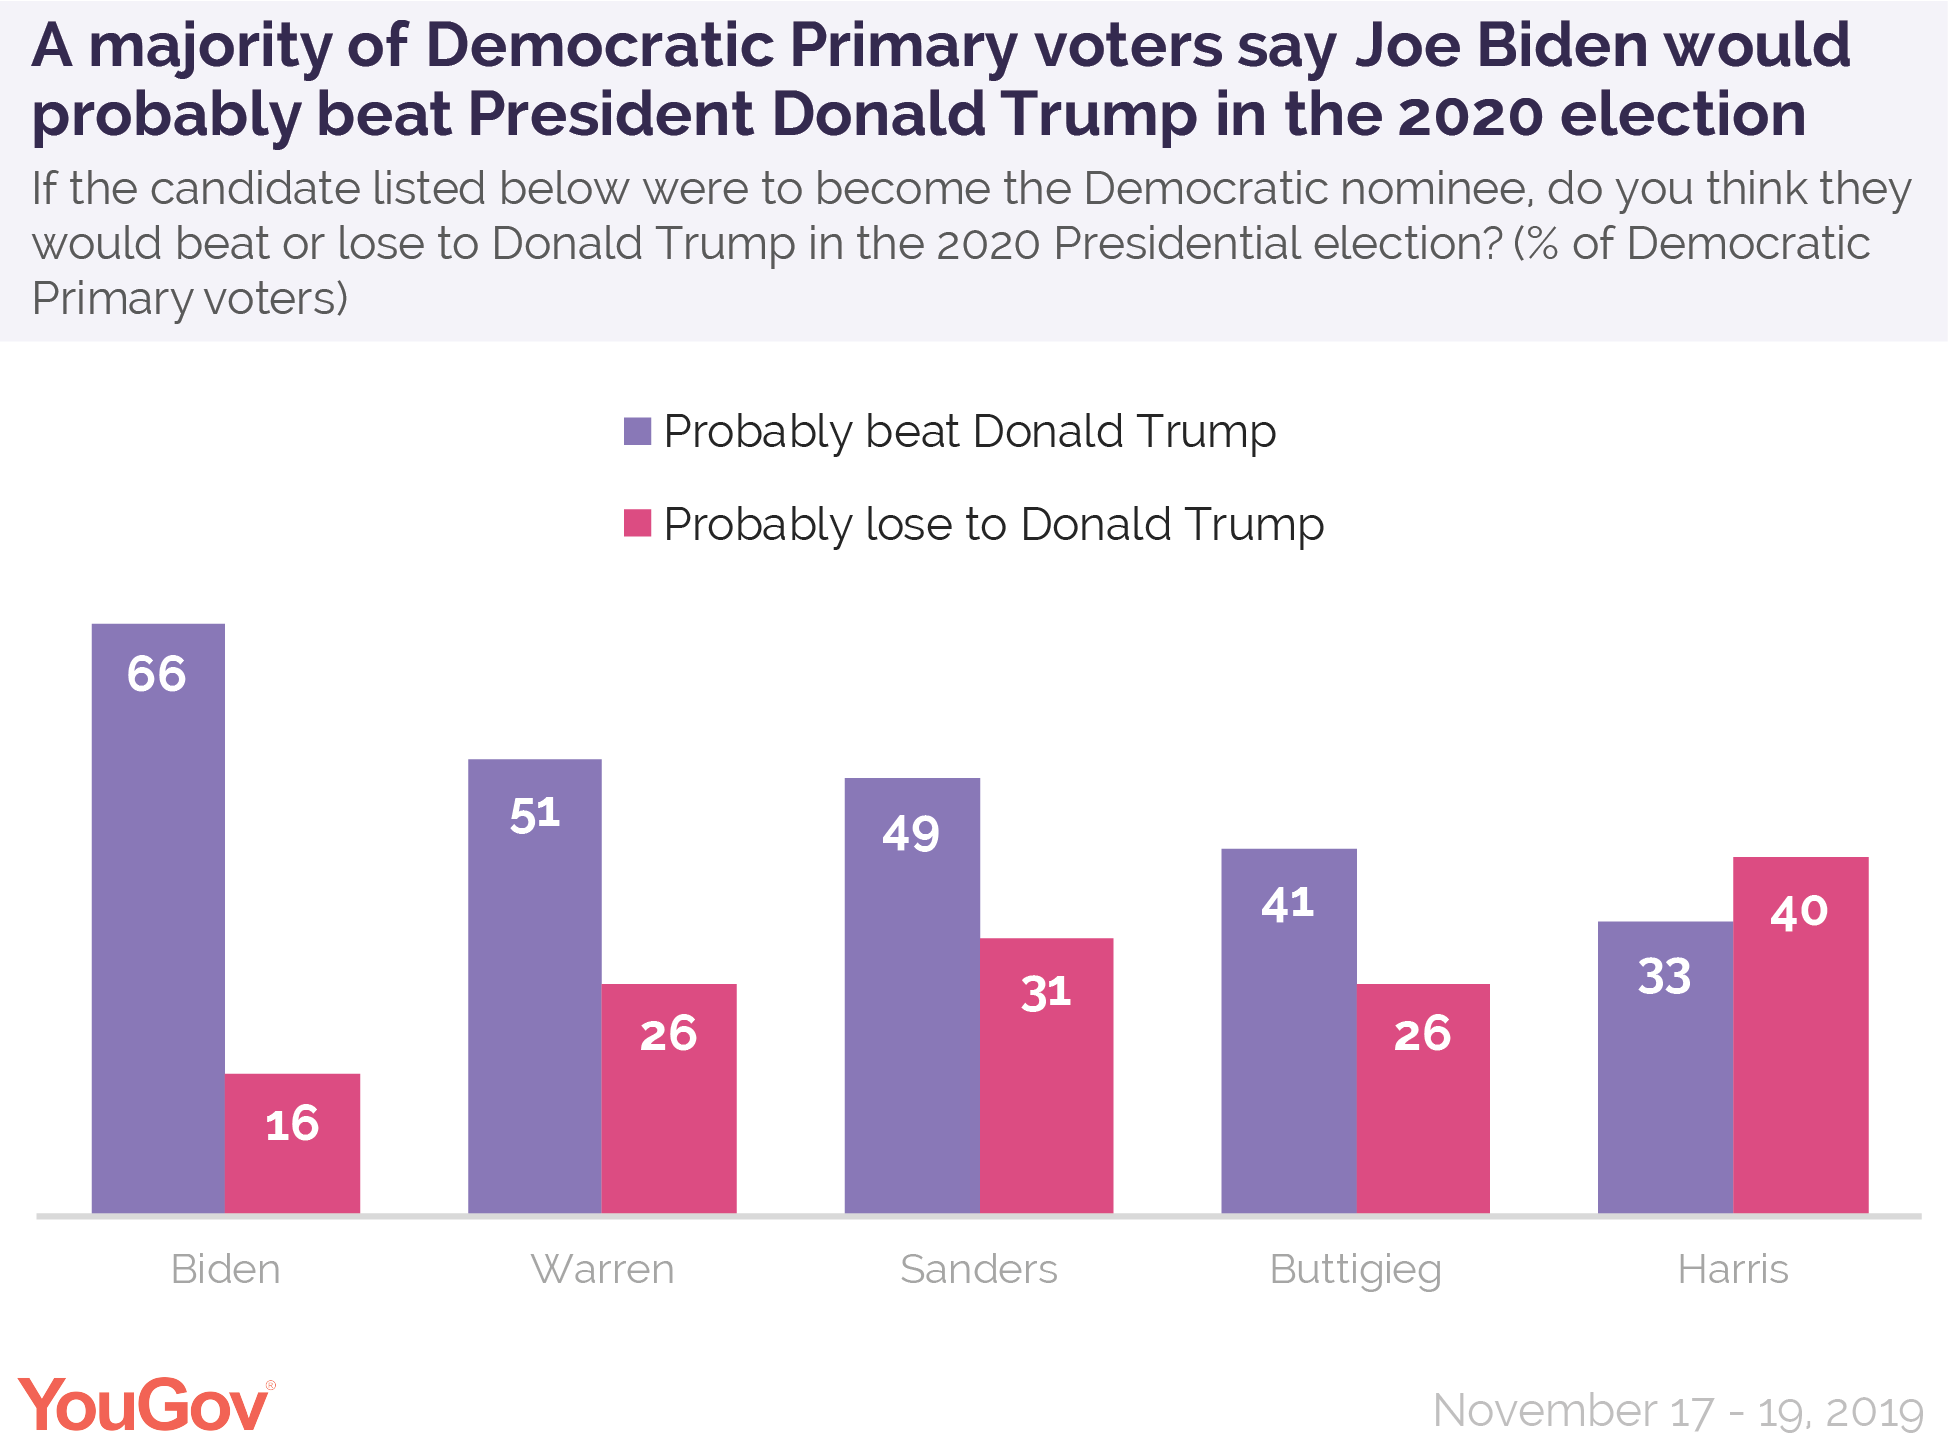 A majority of Democratic Primary voters say former Vice President Joe Biden would probably beat President Donald Trump in the 2020 election